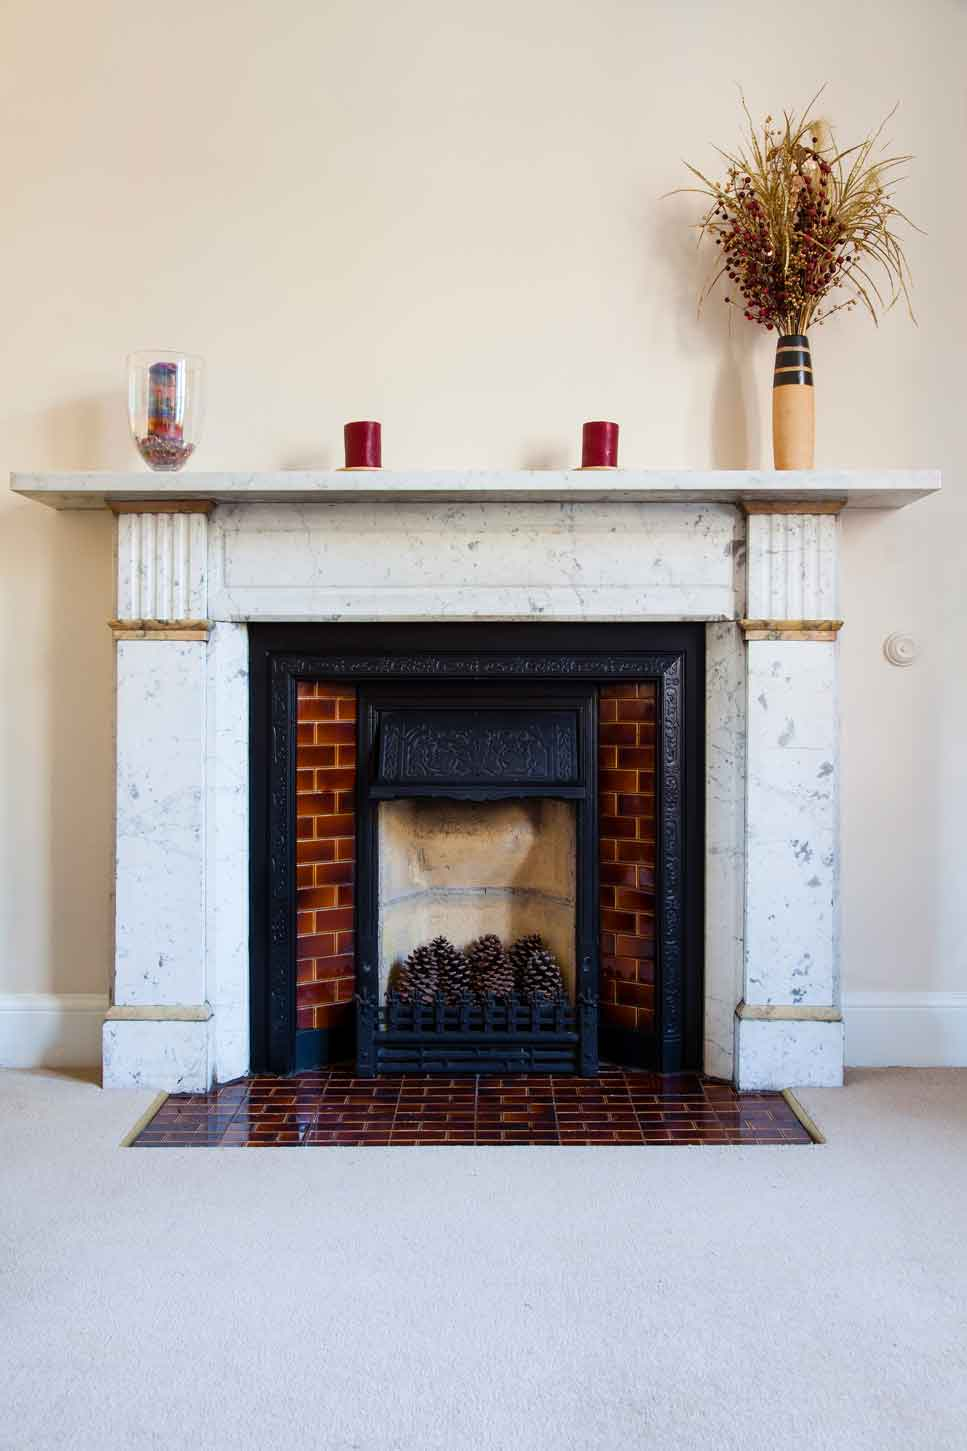 A traditional ornate marble fireplace from a 19th century English home.